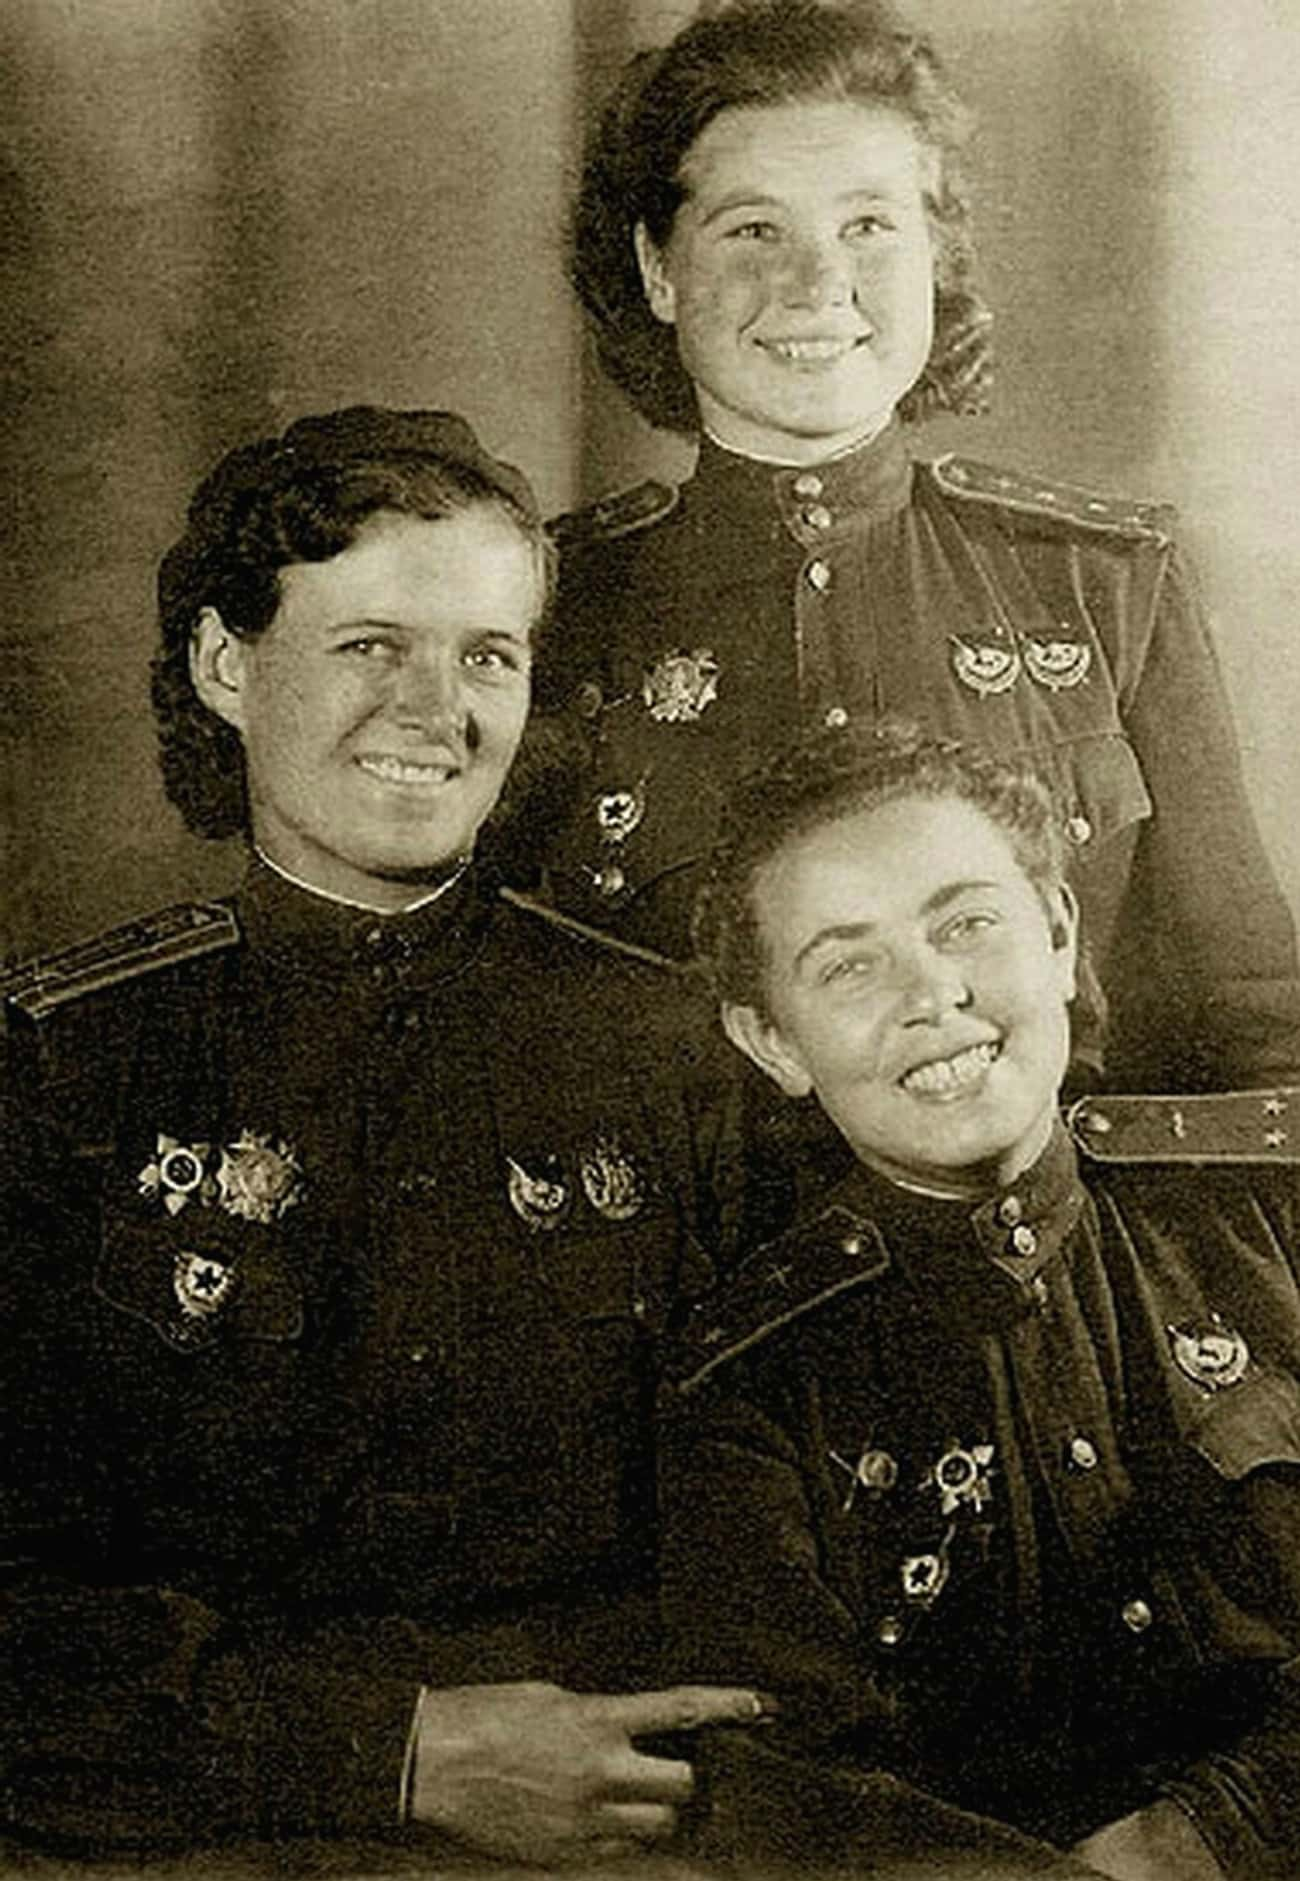 WWII Night Bomber Division - AKA 'Night Witches', 1942